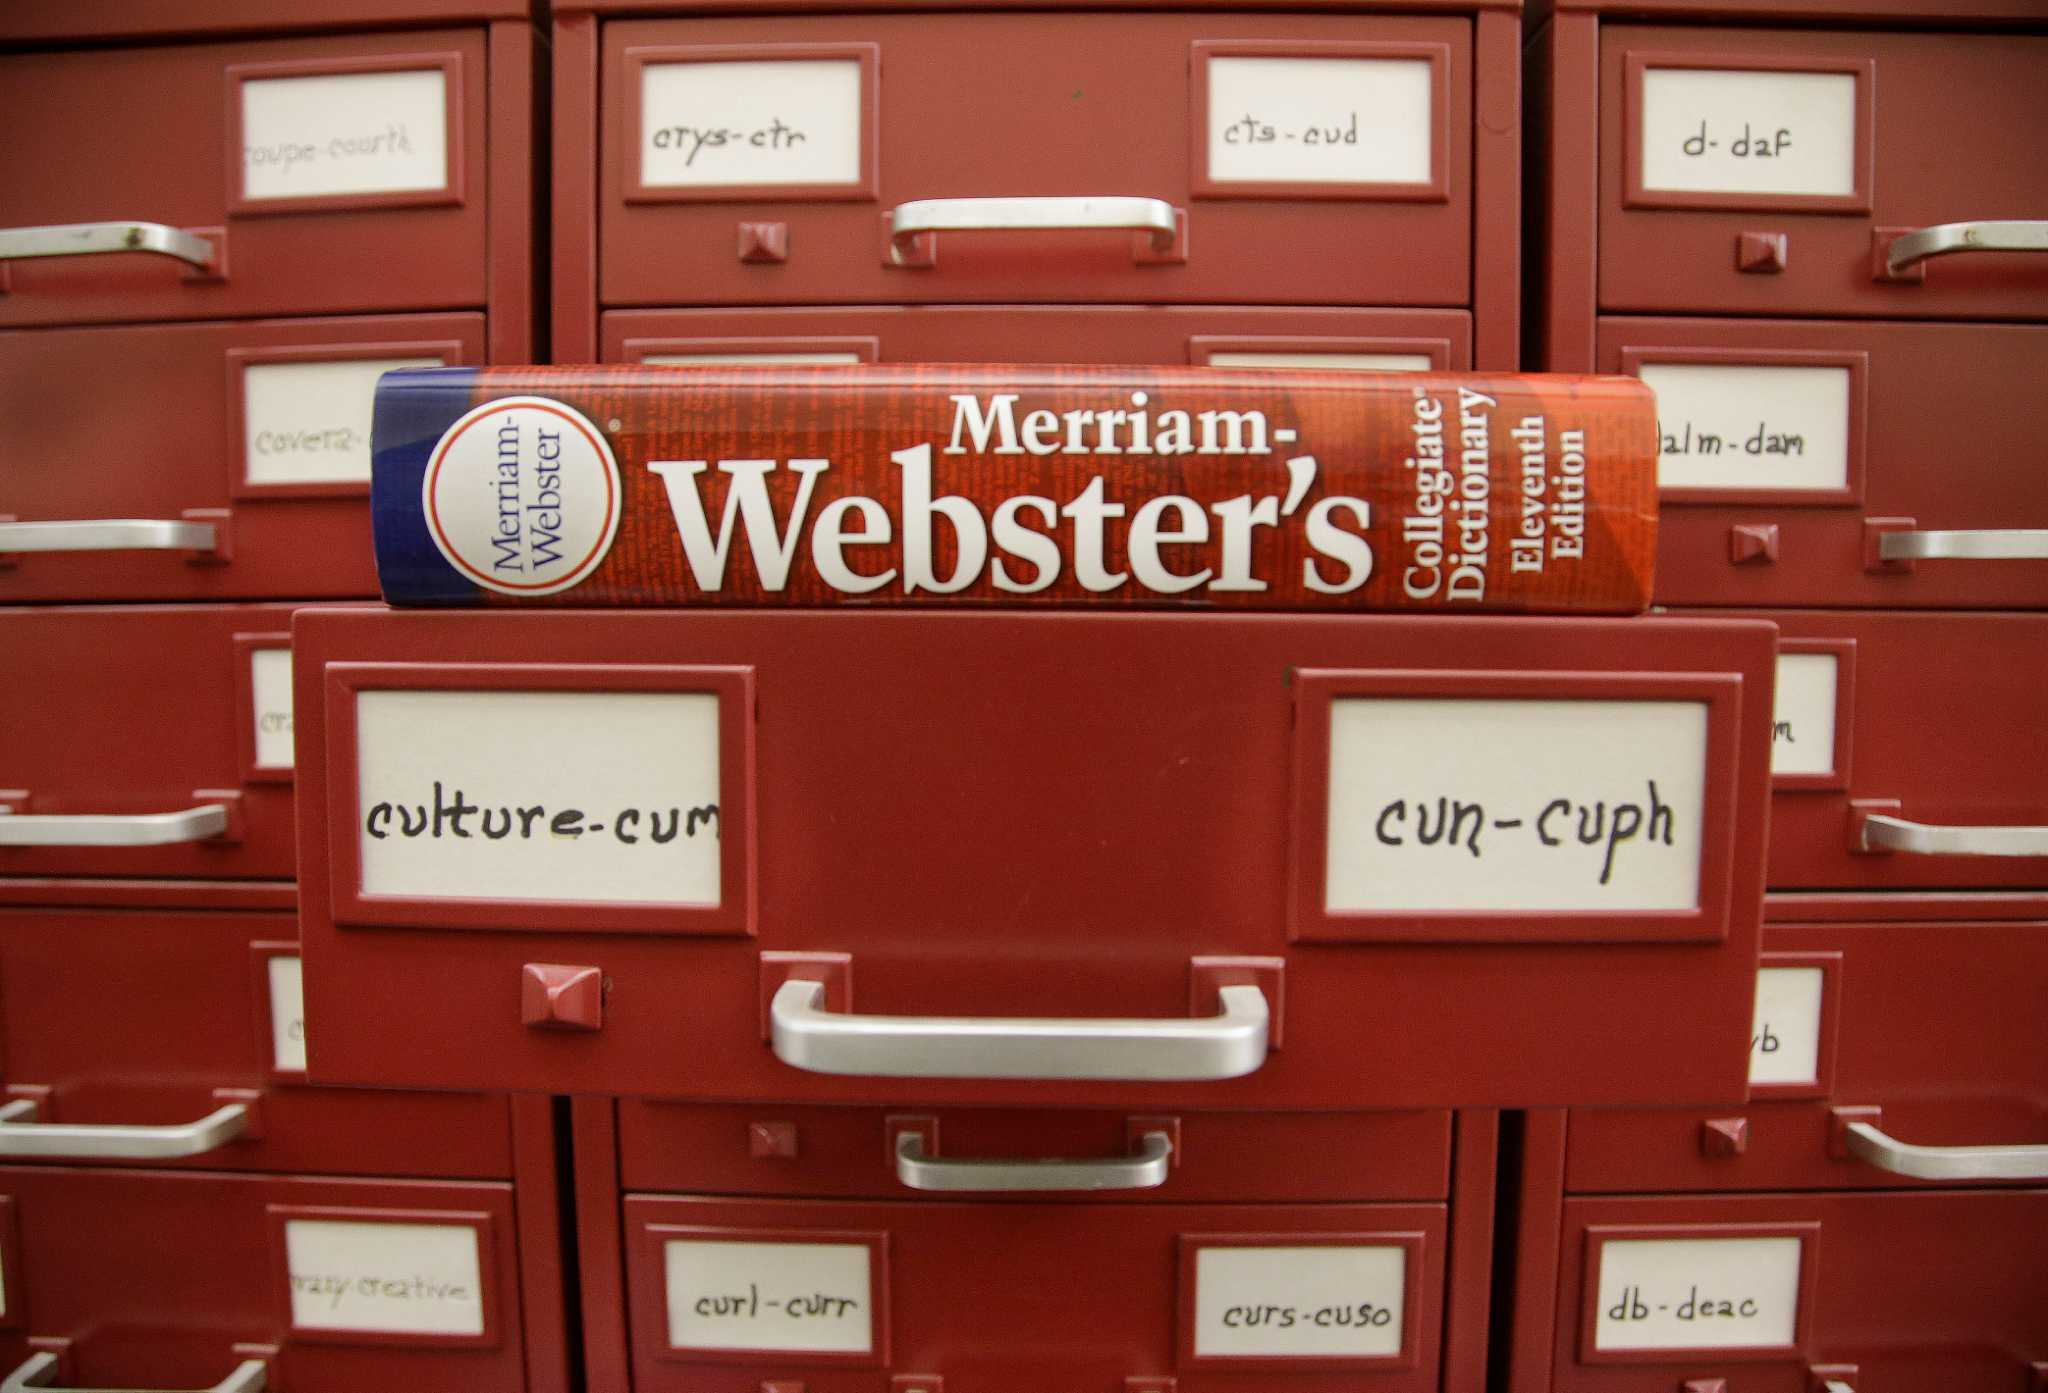 Justice' is Merriam-Webster's word of the year, beating out